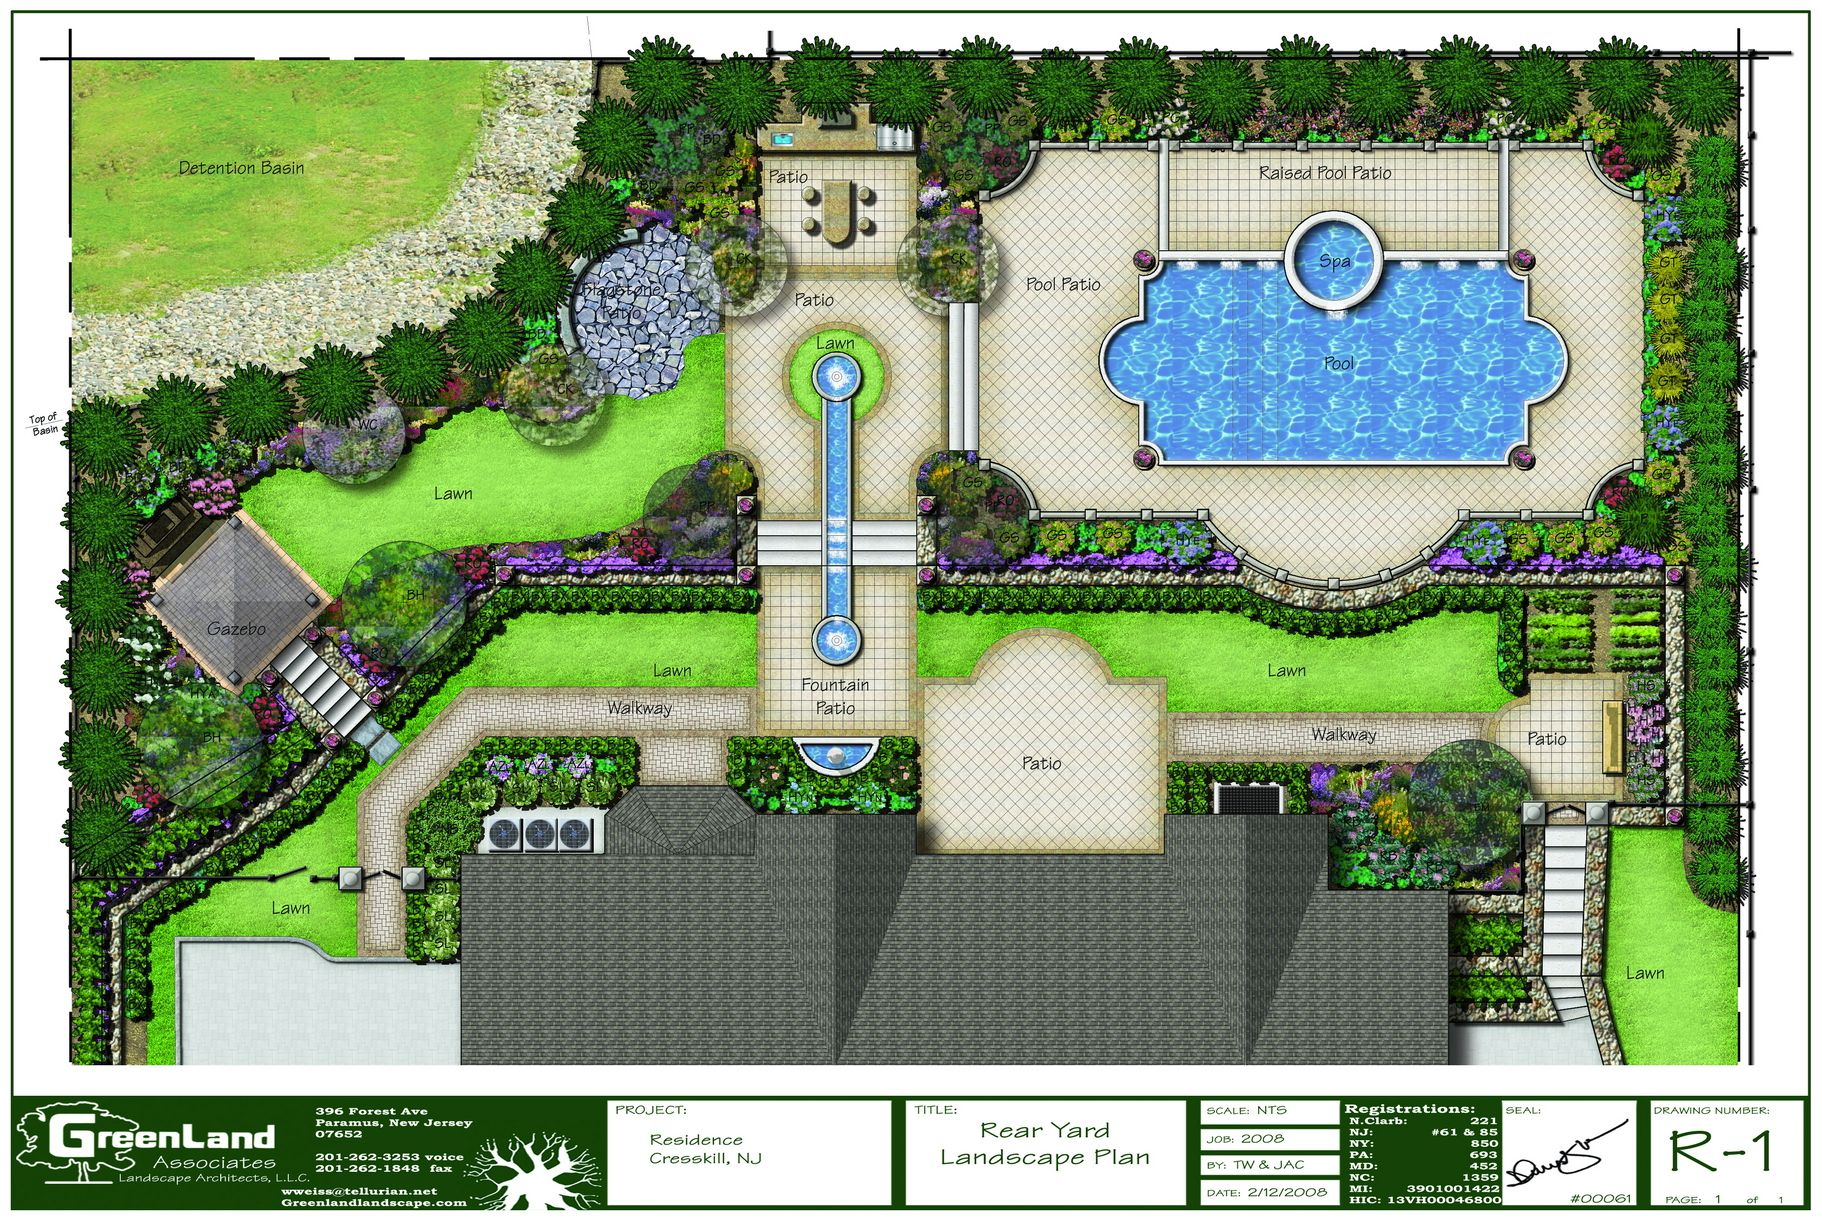 A Full Rendered Landscape Plan For A Residence In Alpine Nj Ld Plans Pinterest Landscape